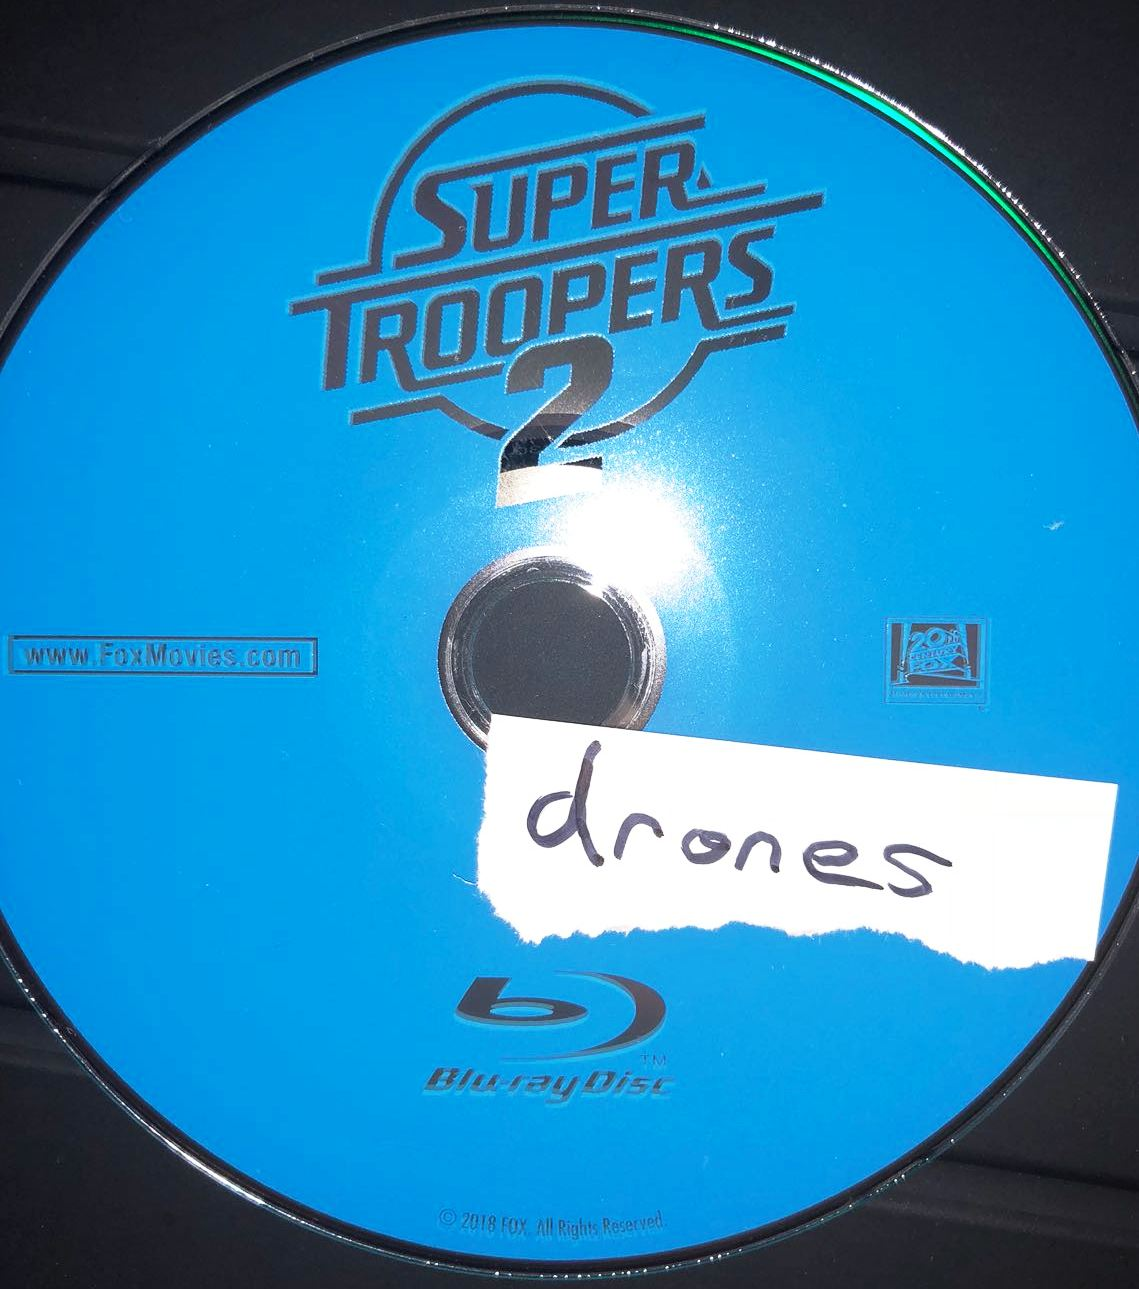 Super Troopers 2 2018 BDRip x264-DRONES[EtMovies]